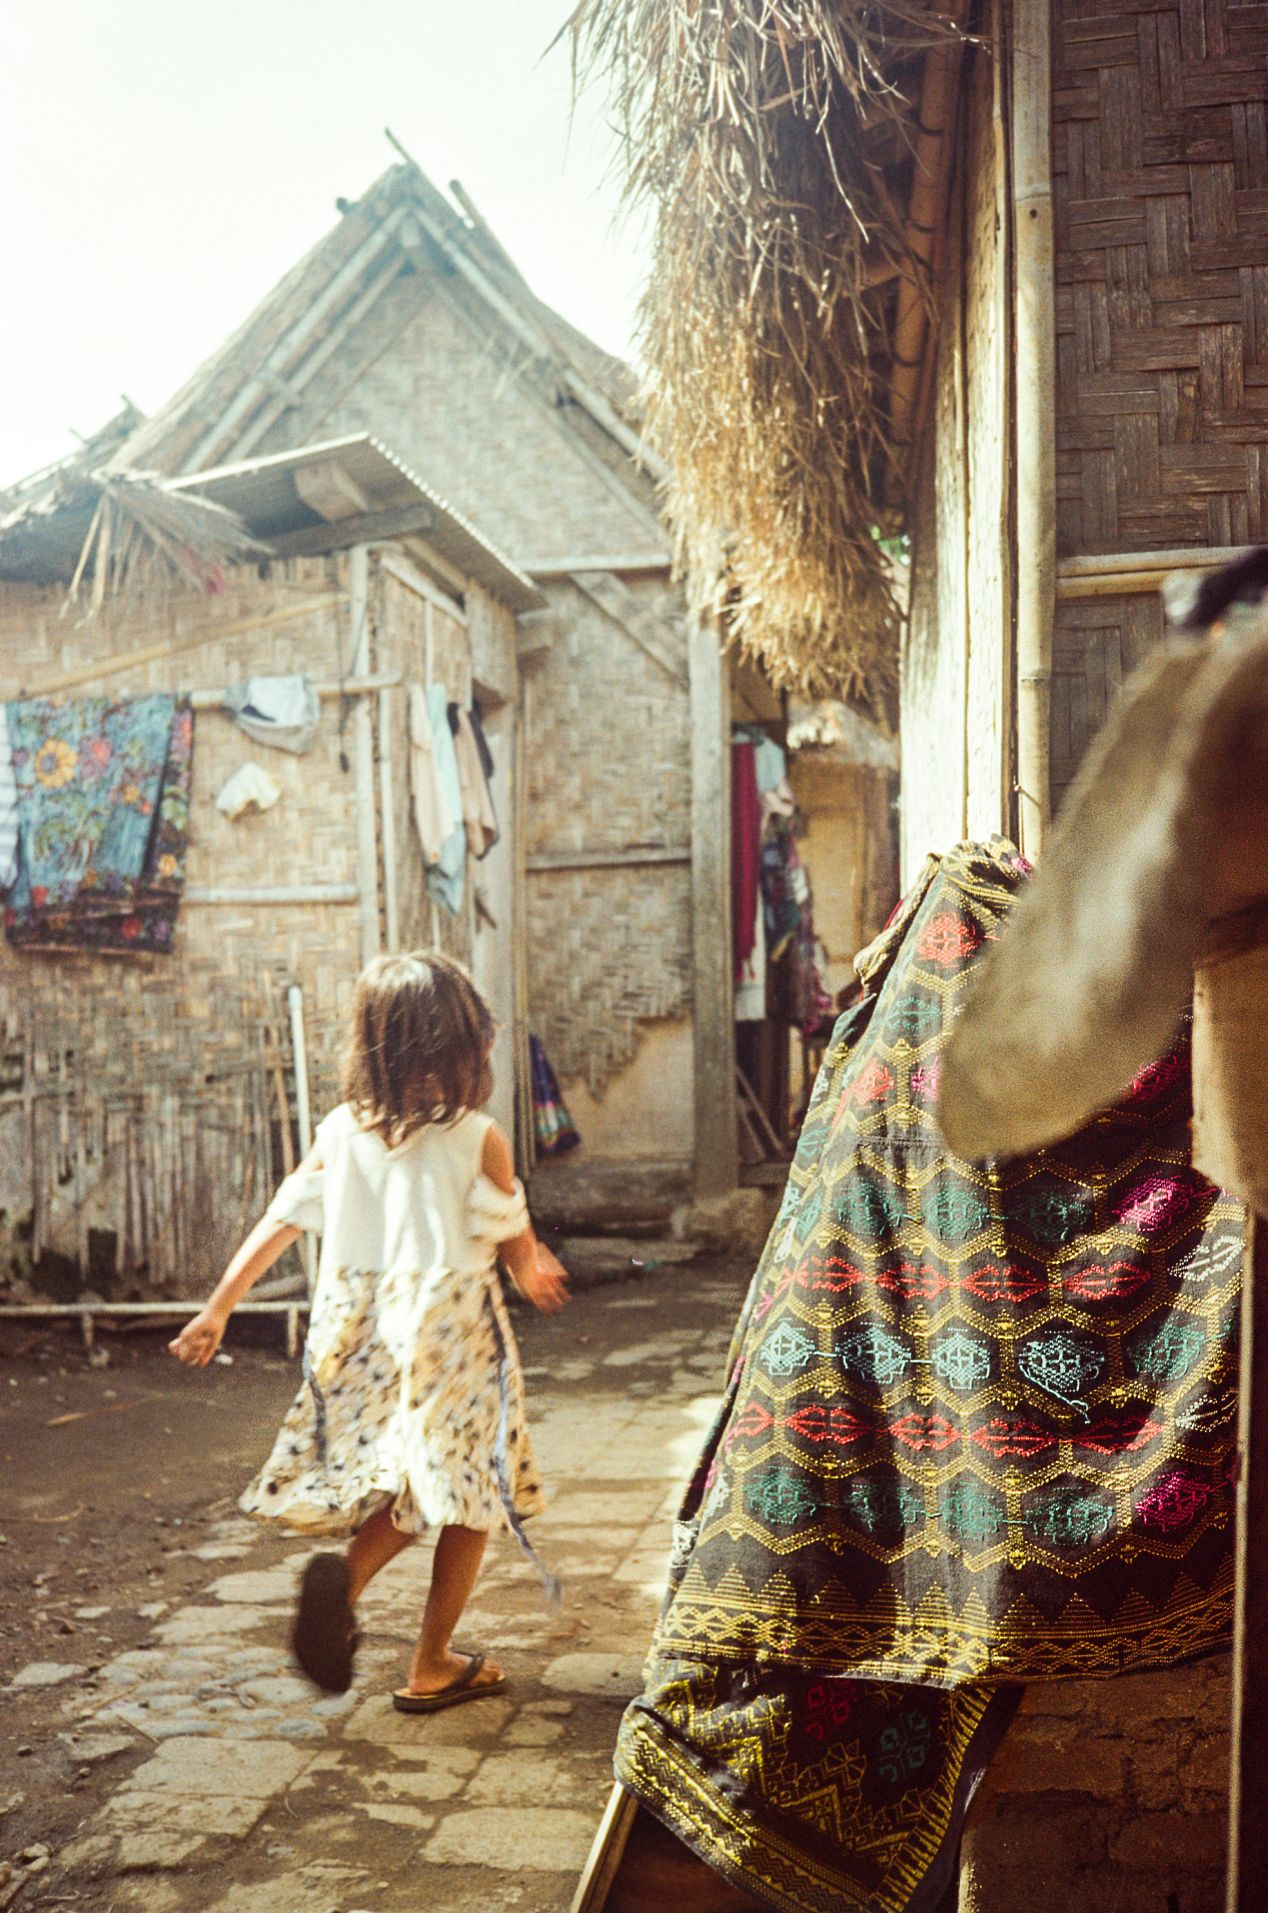 Straw houses, hand-woven cloth, and a happy child. Captured on Kodak ColorPlus 200.